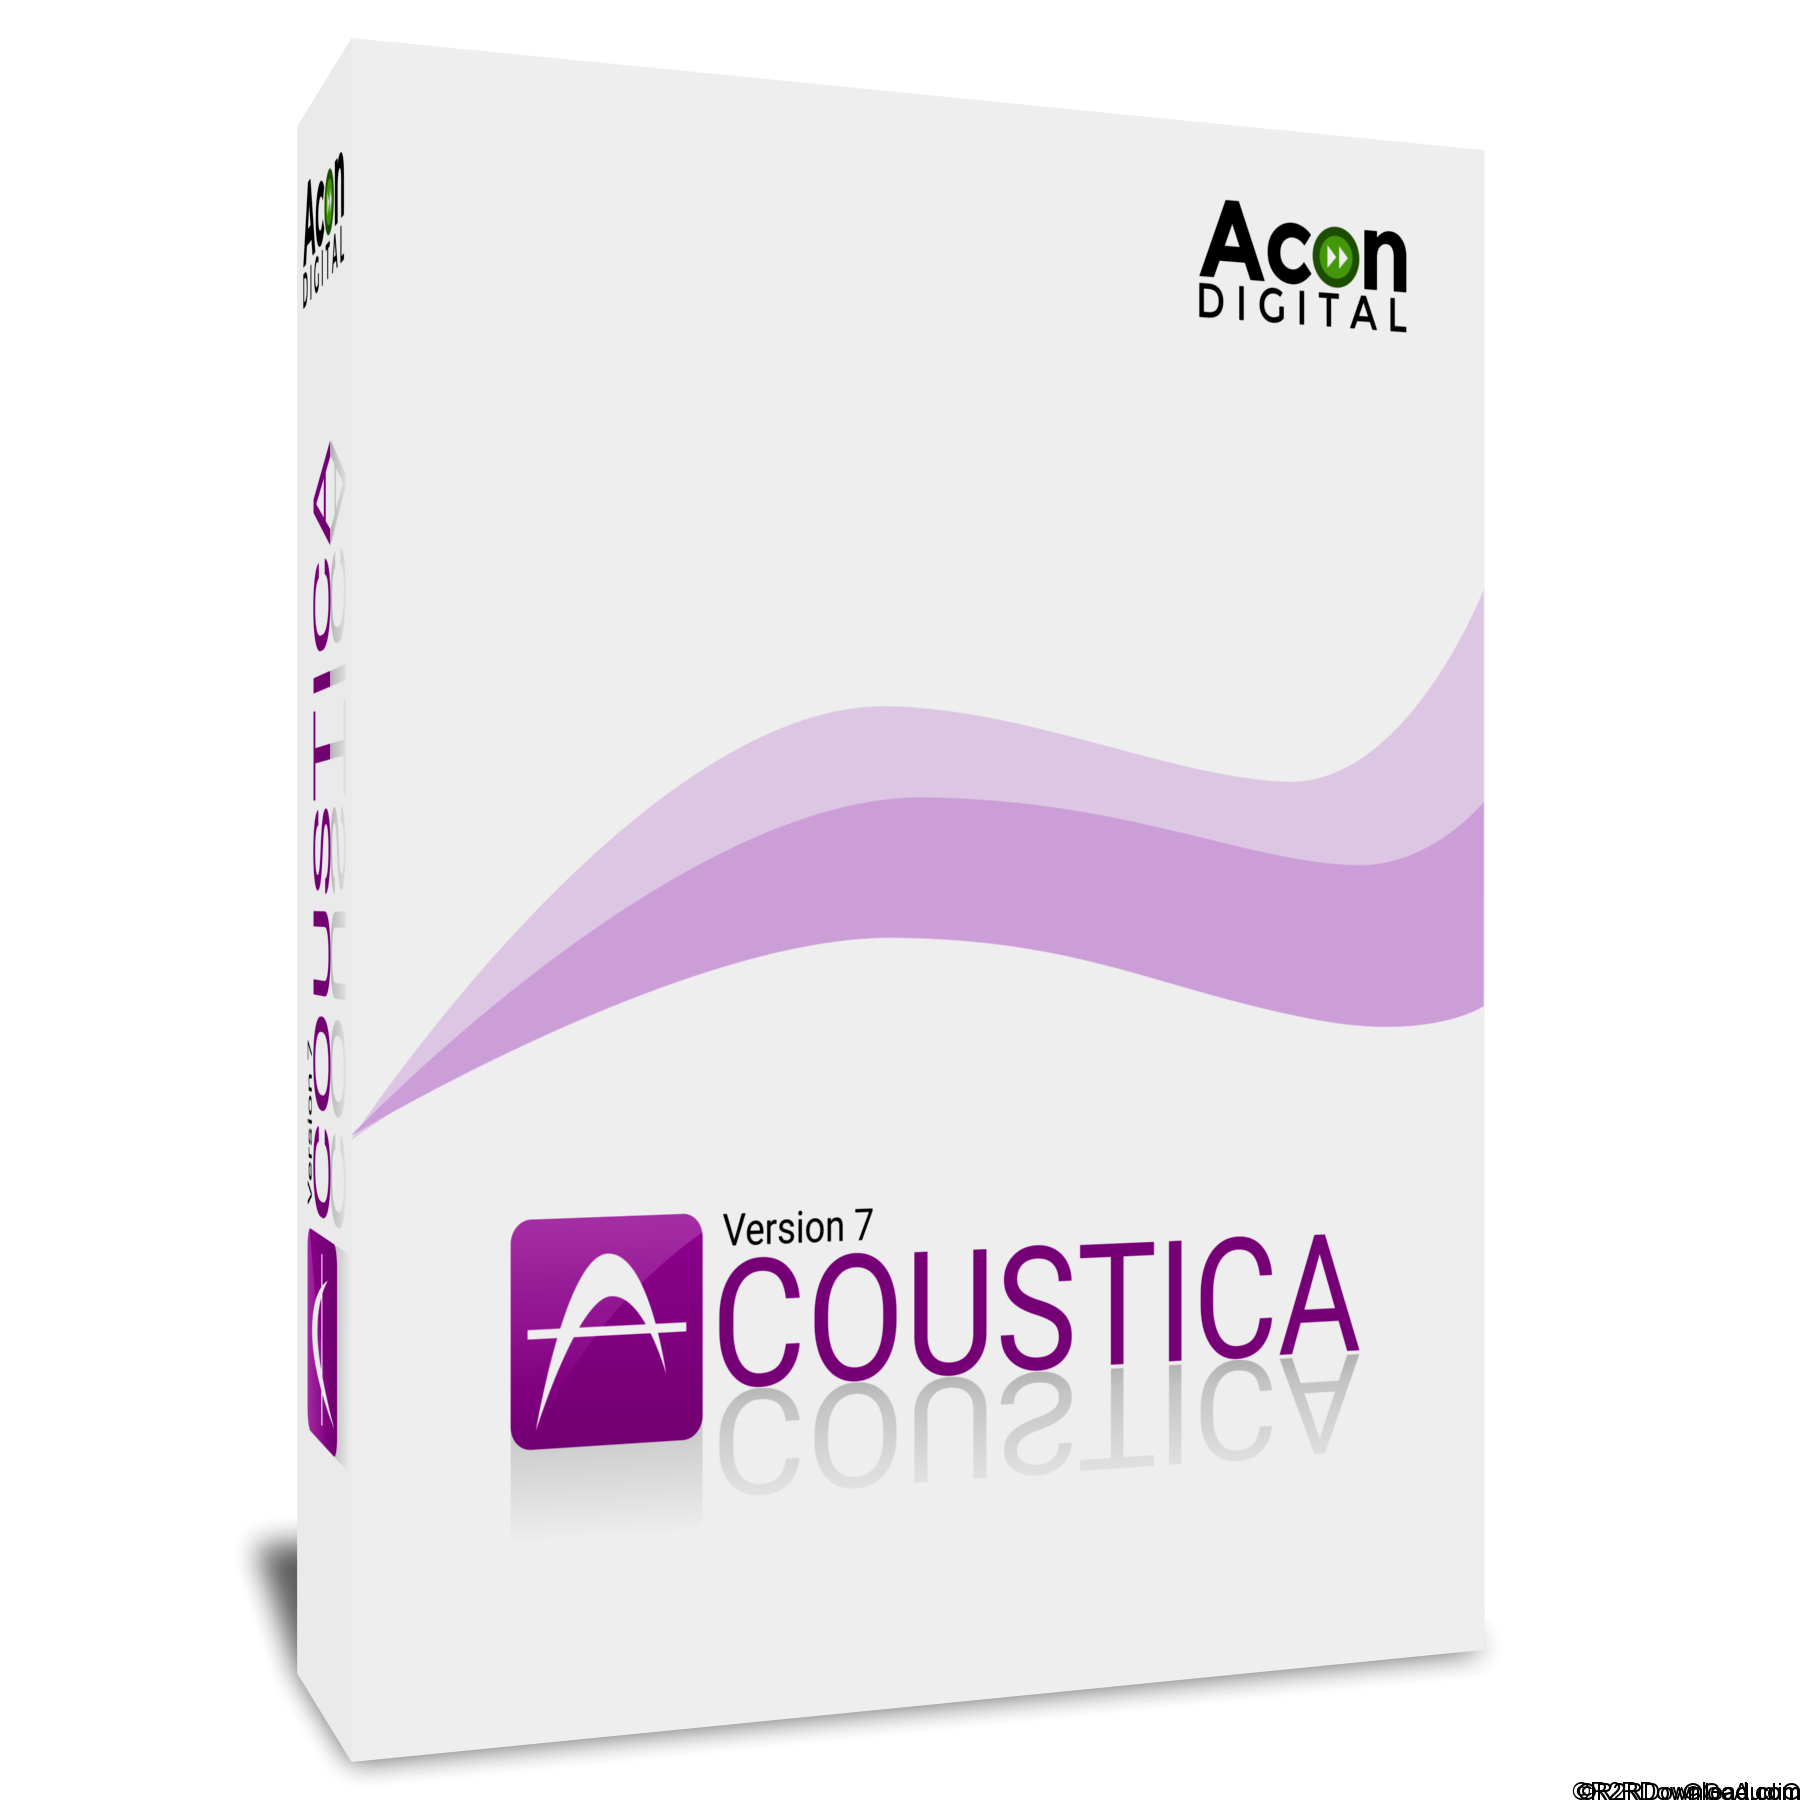 Acon Digital Acoustica v7.0.29 Free Download (Mac OS X)